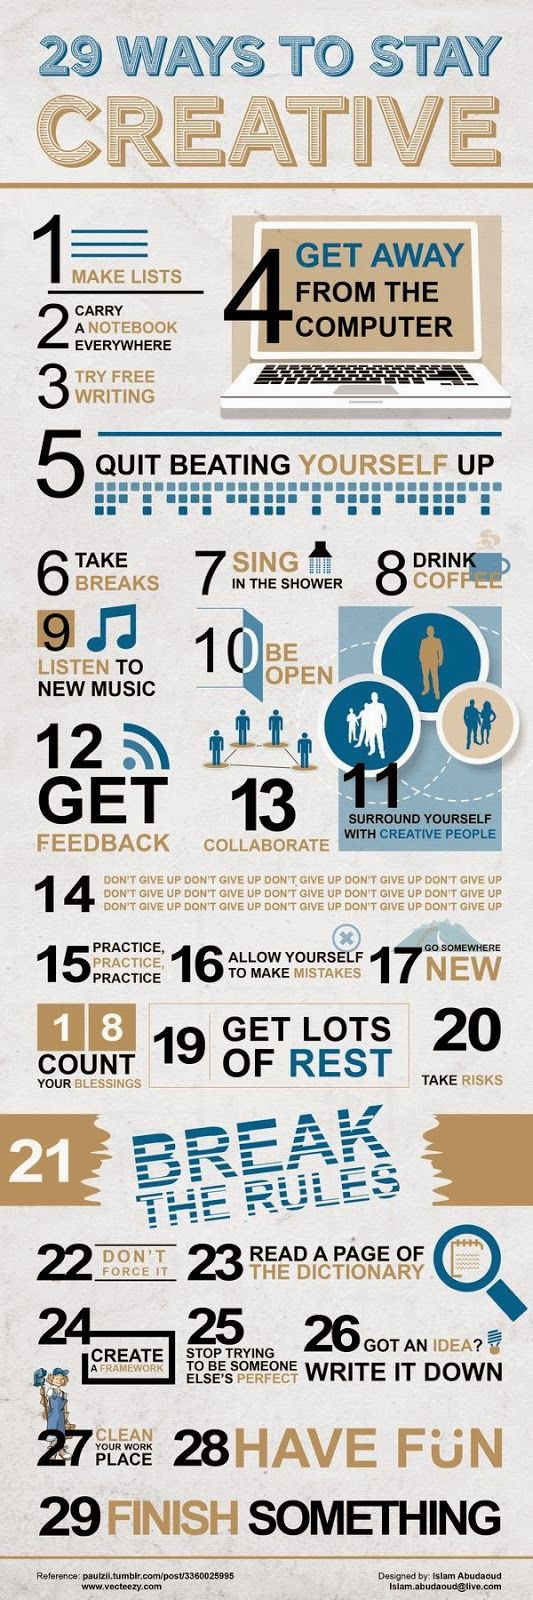 "I bet you can try one per day. Well, N.7 at least everyday! ""29 Ways to Stay #Creative"" #inspiring #infographic"